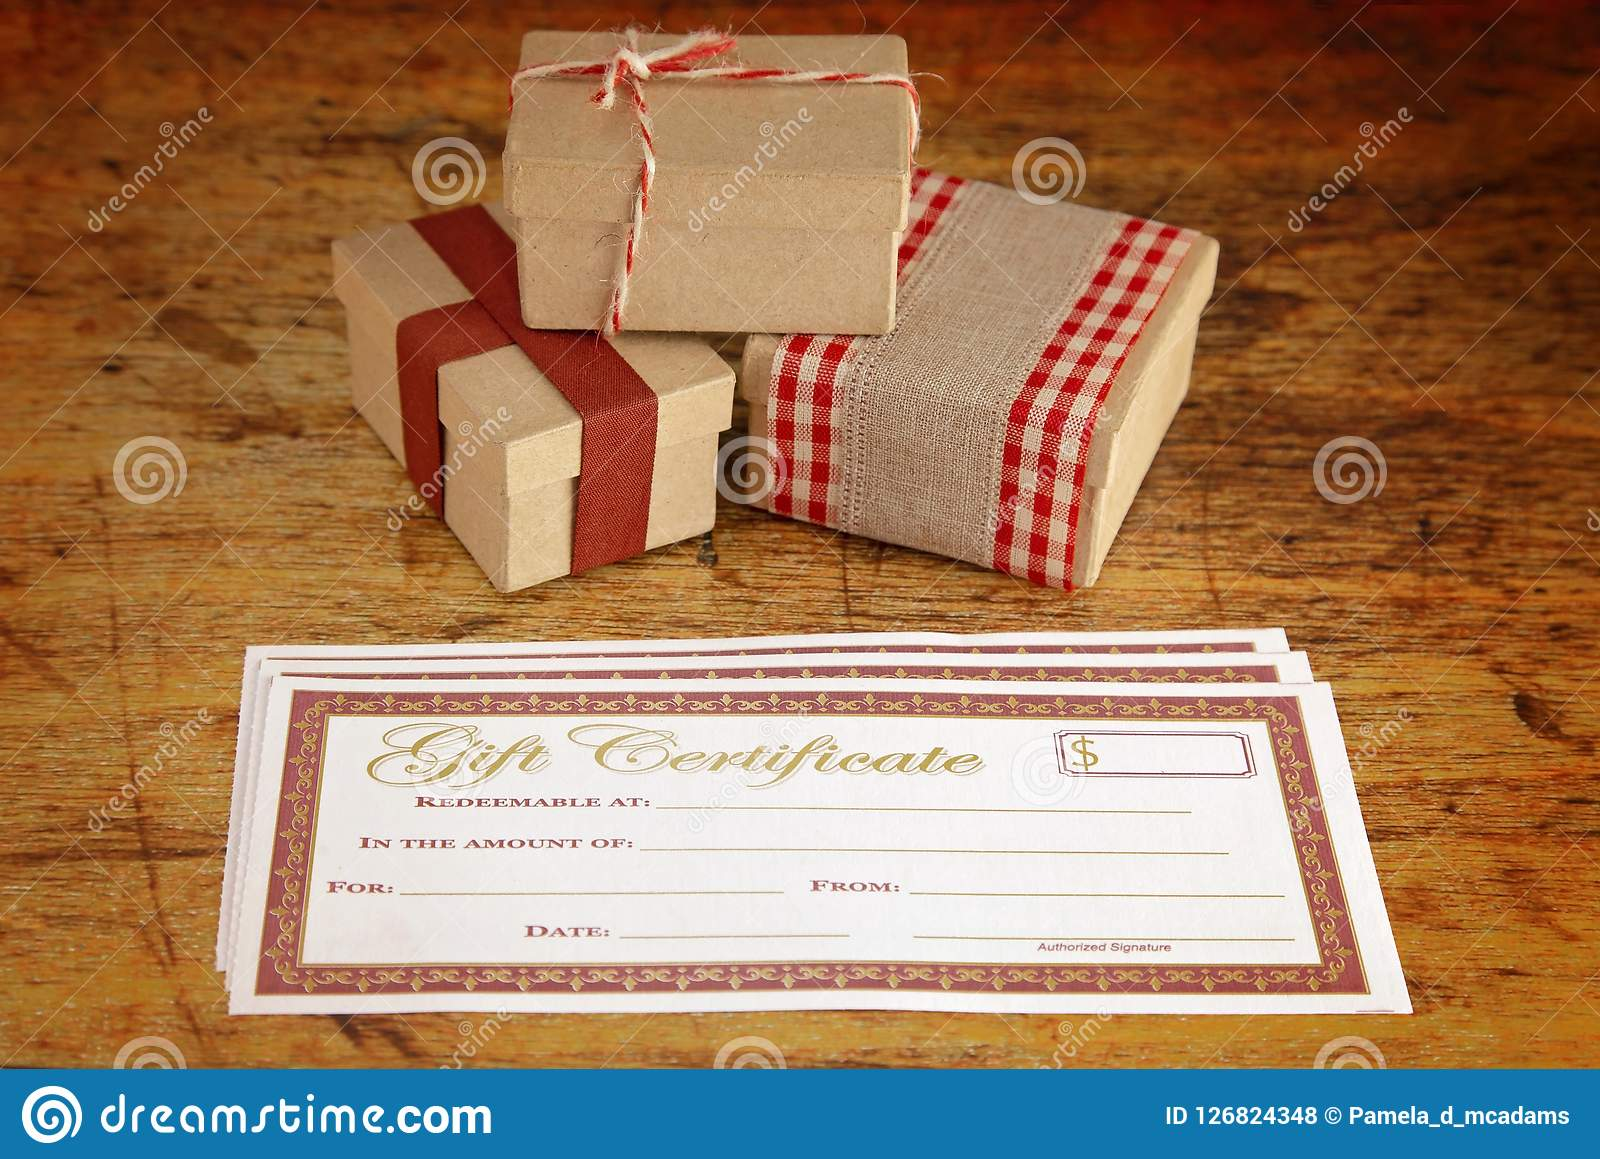 christmas presents and blank gift certificate stock photo image of